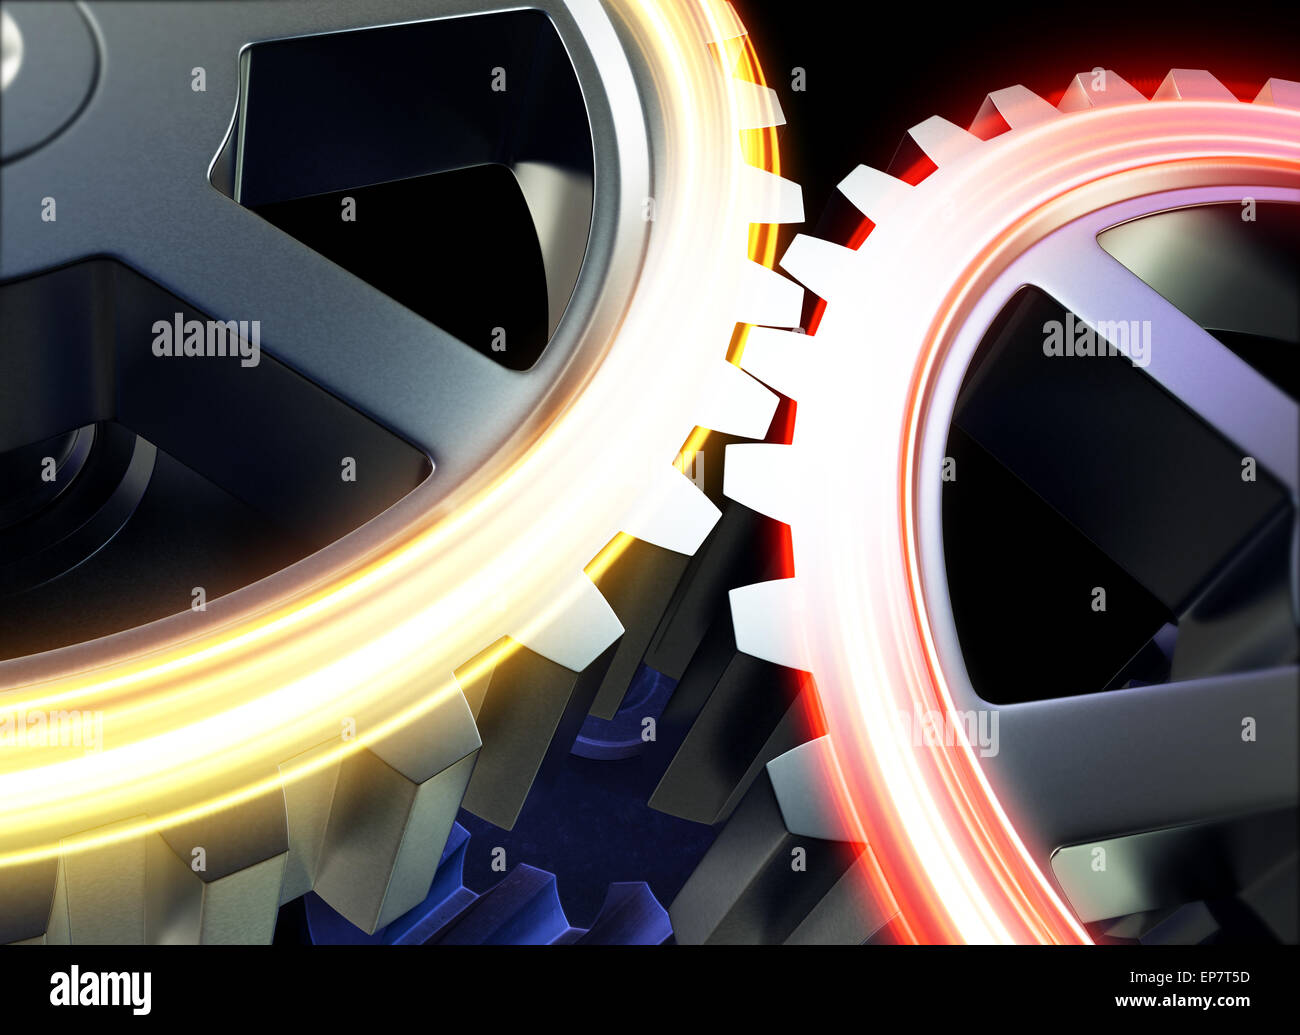 Gear or cogwheel working together - Stock Image